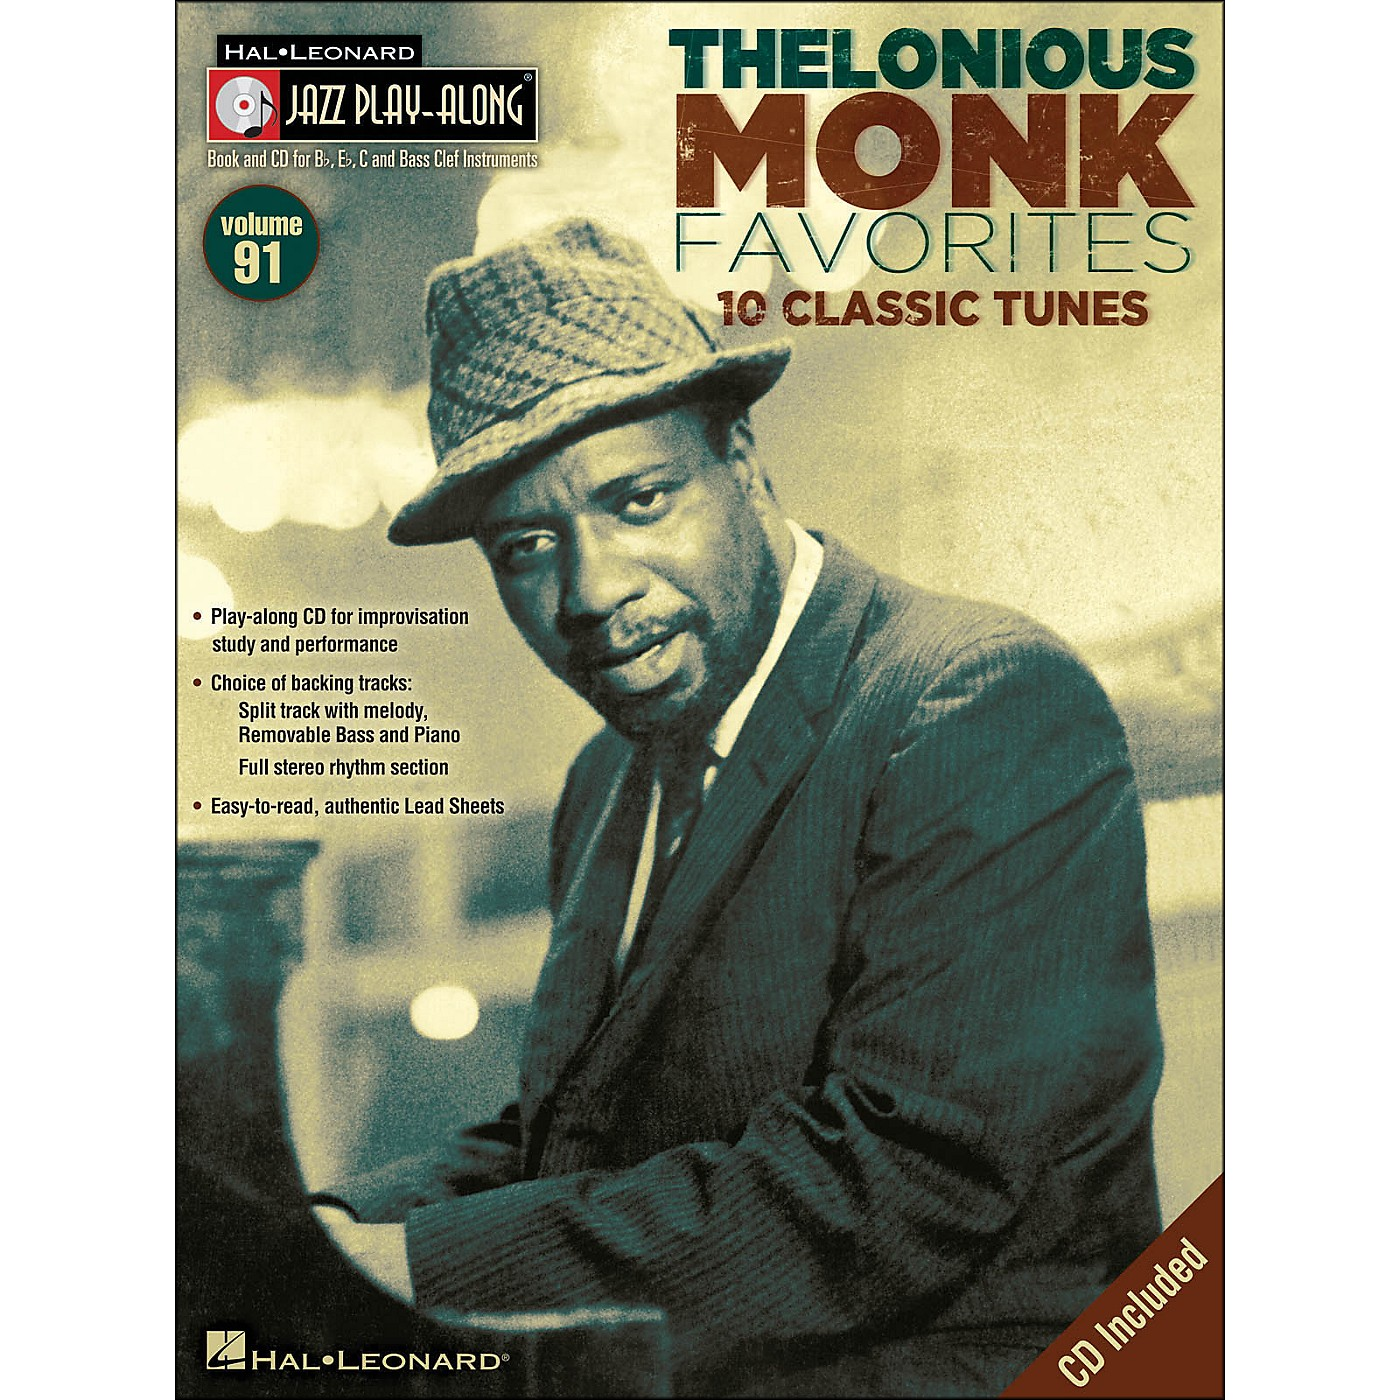 Hal Leonard Thelonious Monk Favorites - Jazz Play-Along Volume 91 CD/Pkg thumbnail